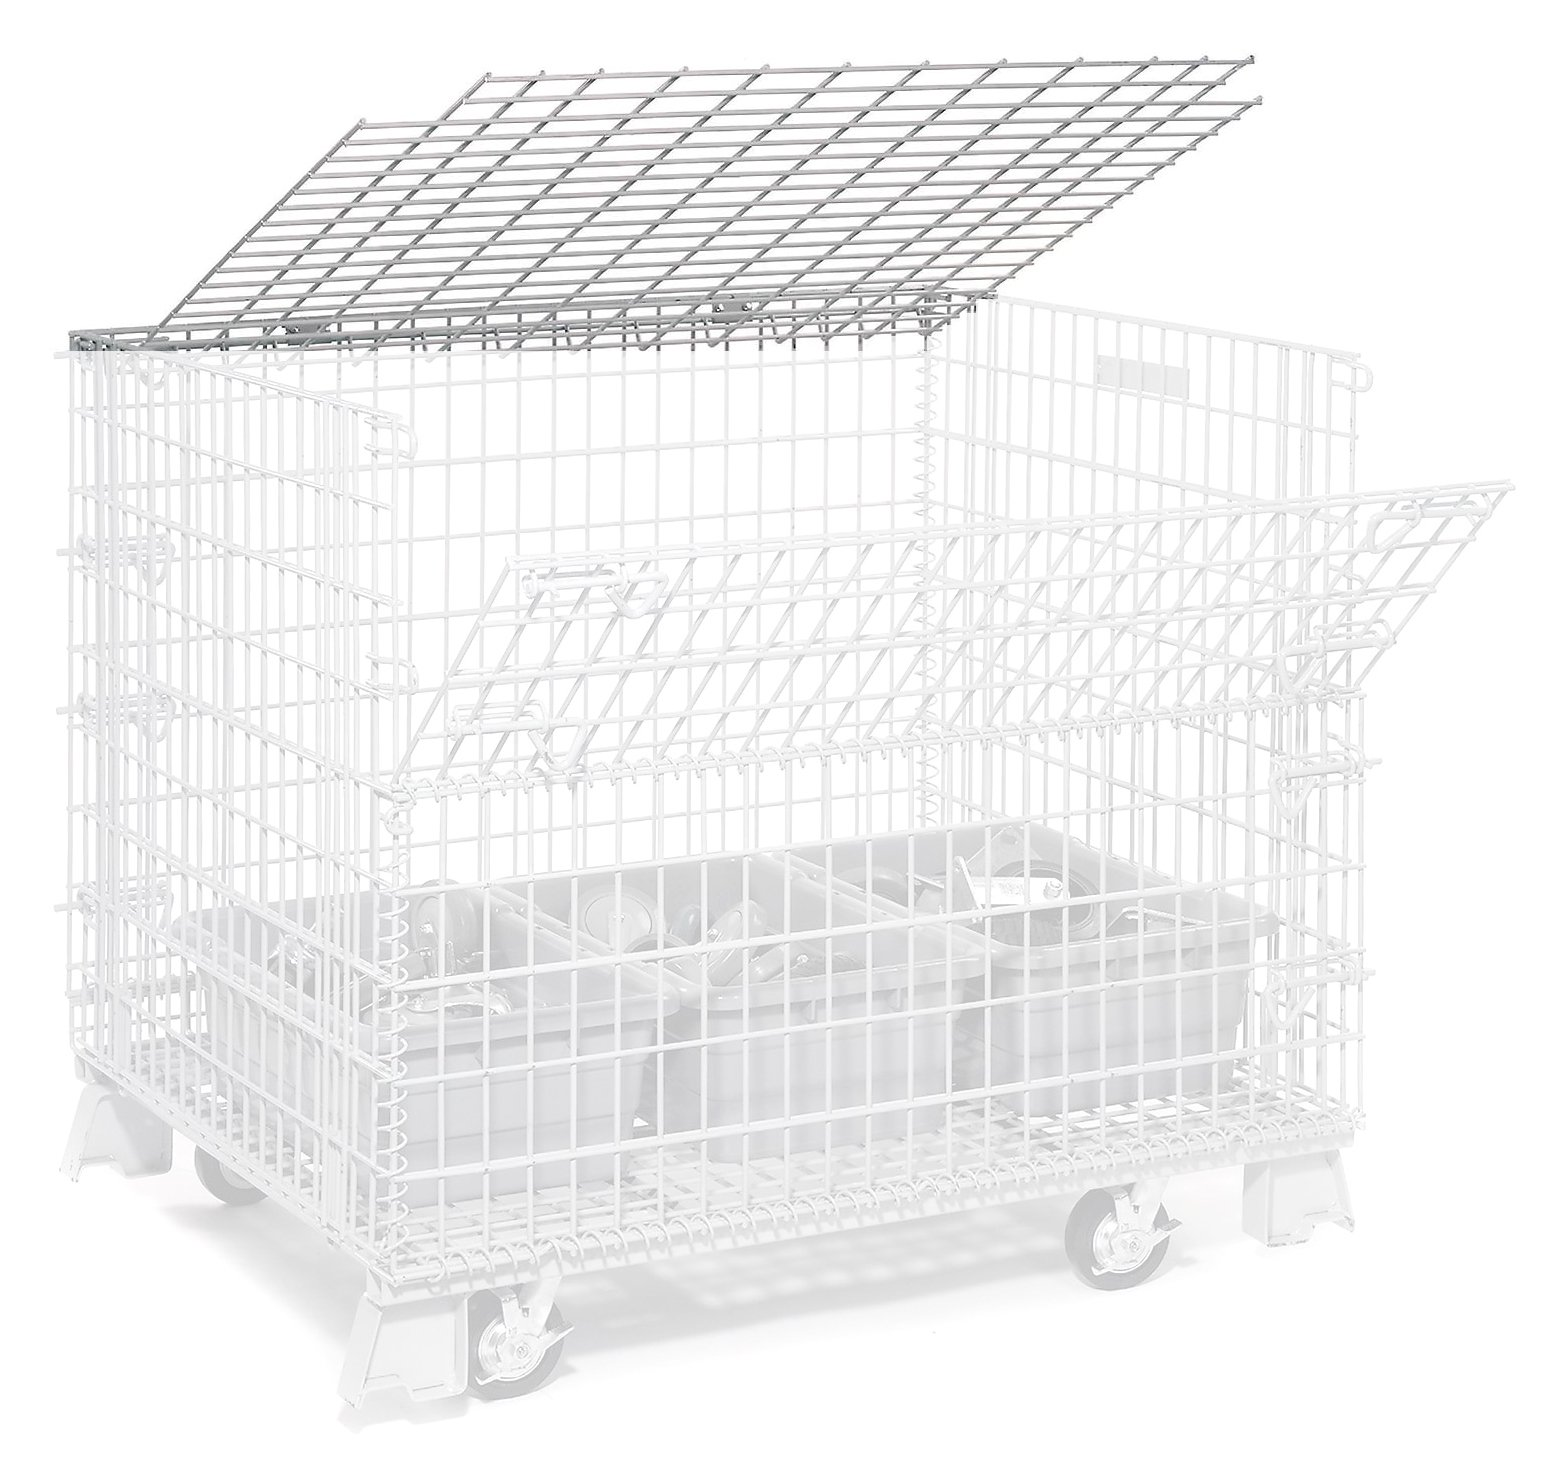 Nexel Hinged Lid for 4000 Lbs. Capacity Folding Wire Container, 40''L x 32''W